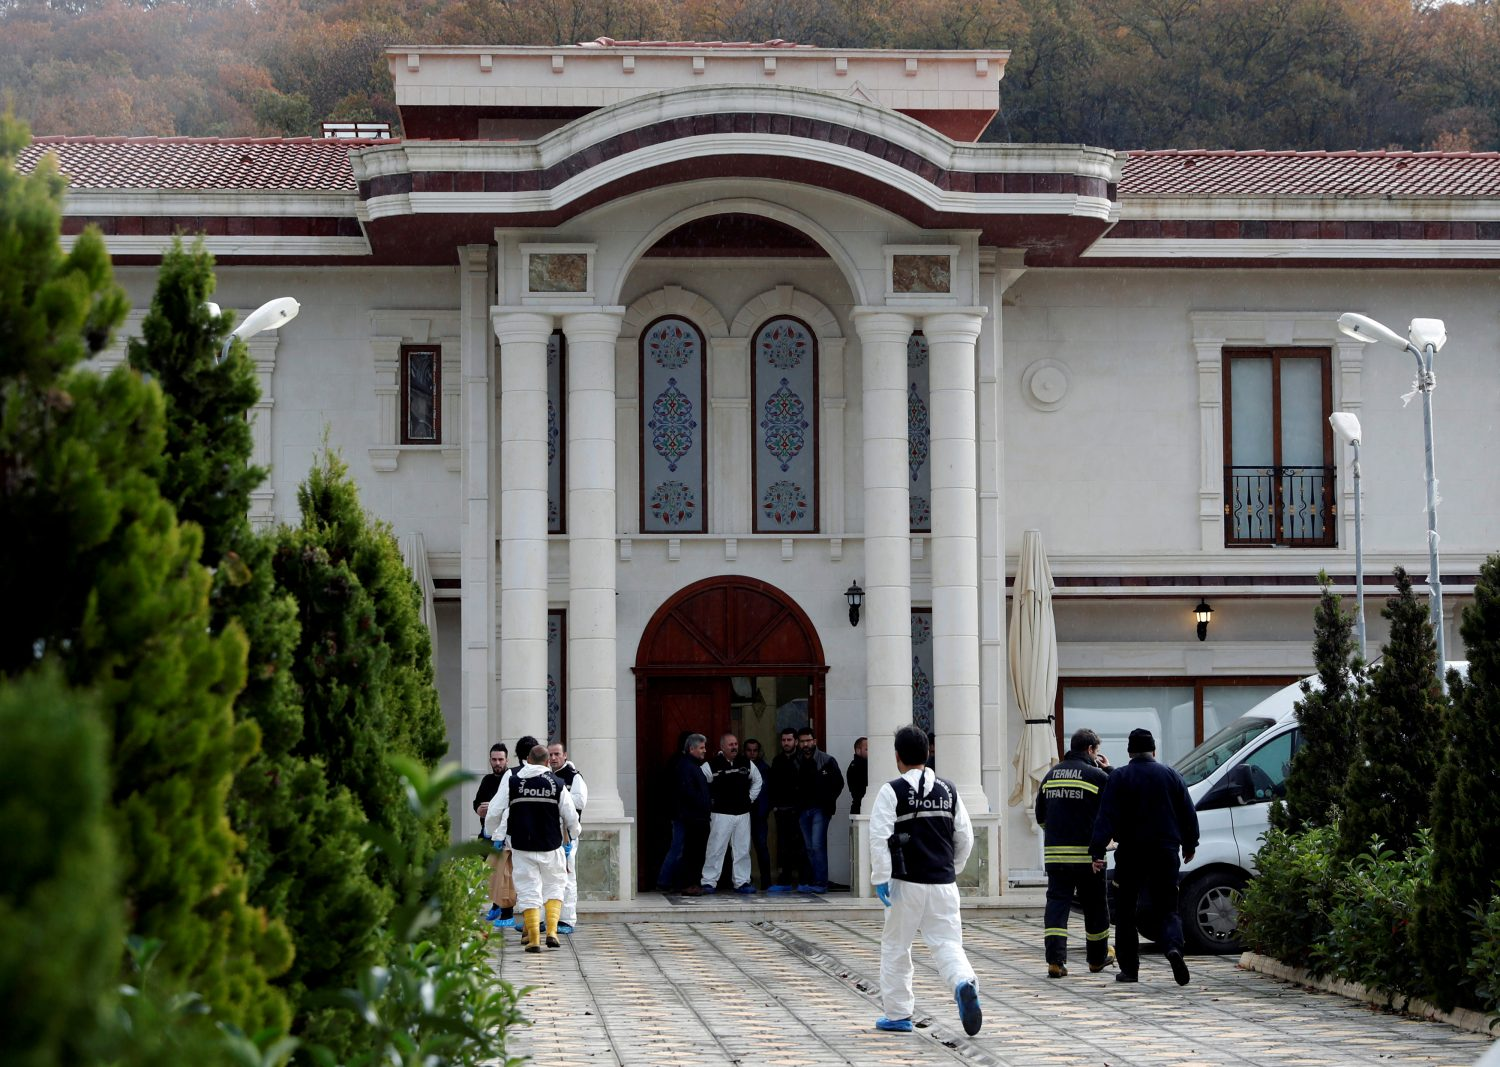 FILE PHOTO: Turkish police forensic experts and plainclothes police officers stand at the entrance of a villa in the Samanli village of the Termal district in the northwestern province of Yalova, Turkey, November 26, 2018, as police search inside in relation to the investigation into the killing of Saudi journalist Jamal Khashoggi. REUTERS/Osman Orsal/File Photo